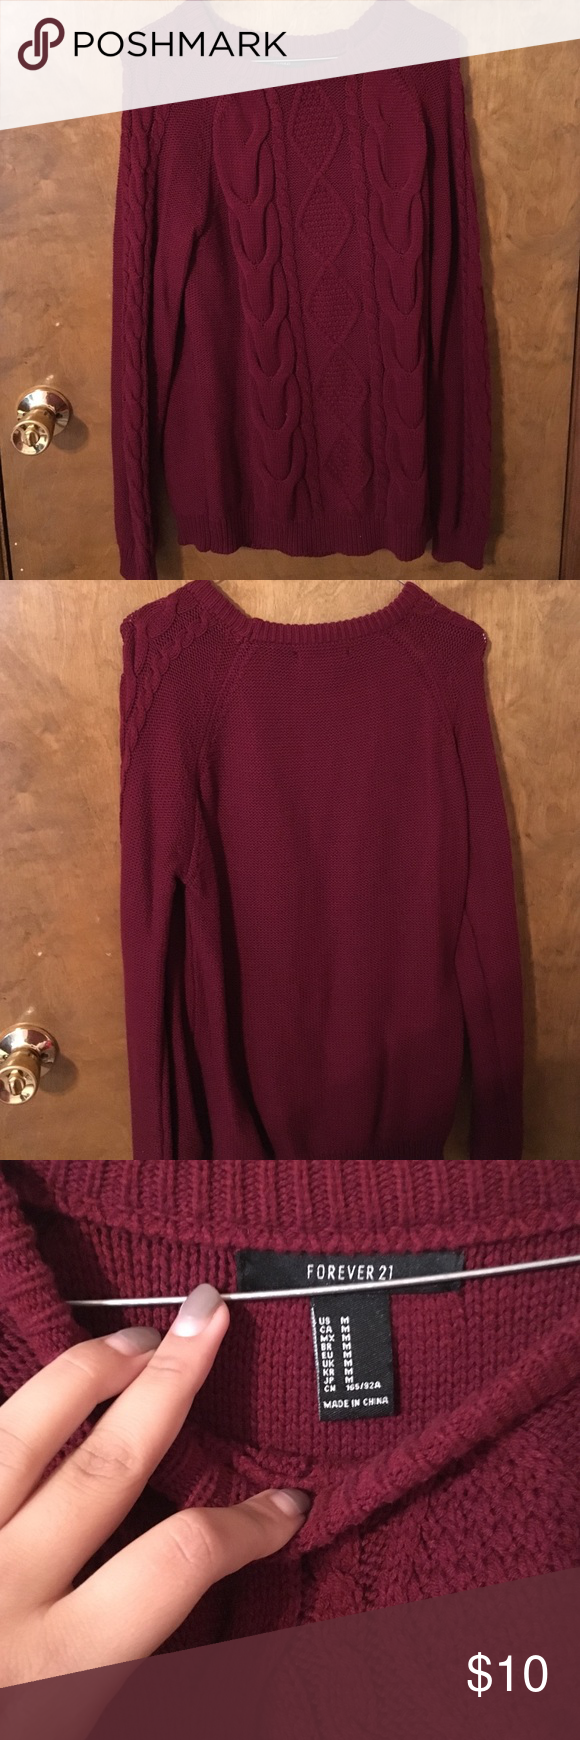 Burgundy sweater Forever 21 medium burgundy sweater (worn once) very warm Forever 21 Sweaters Crew & Scoop Necks